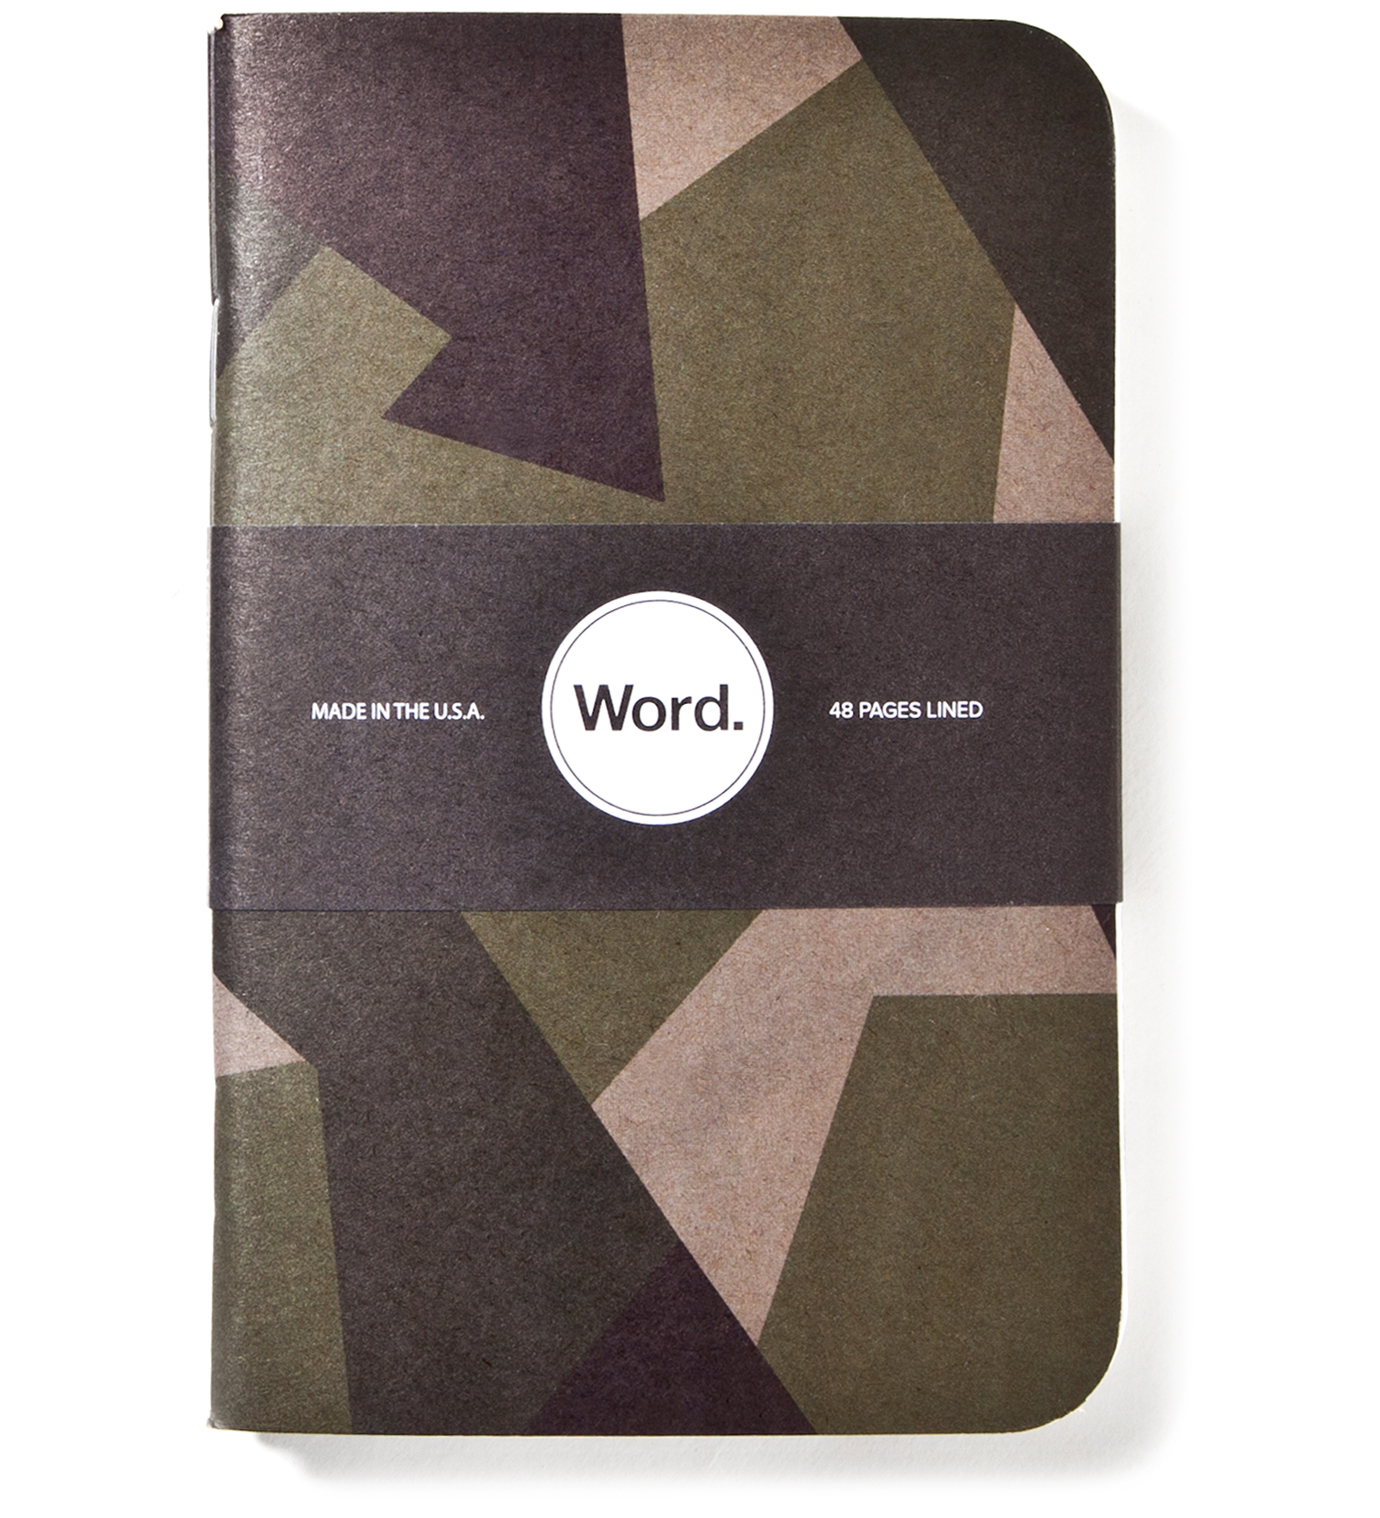 Word. Swedish Camo 3 Pack Notebook